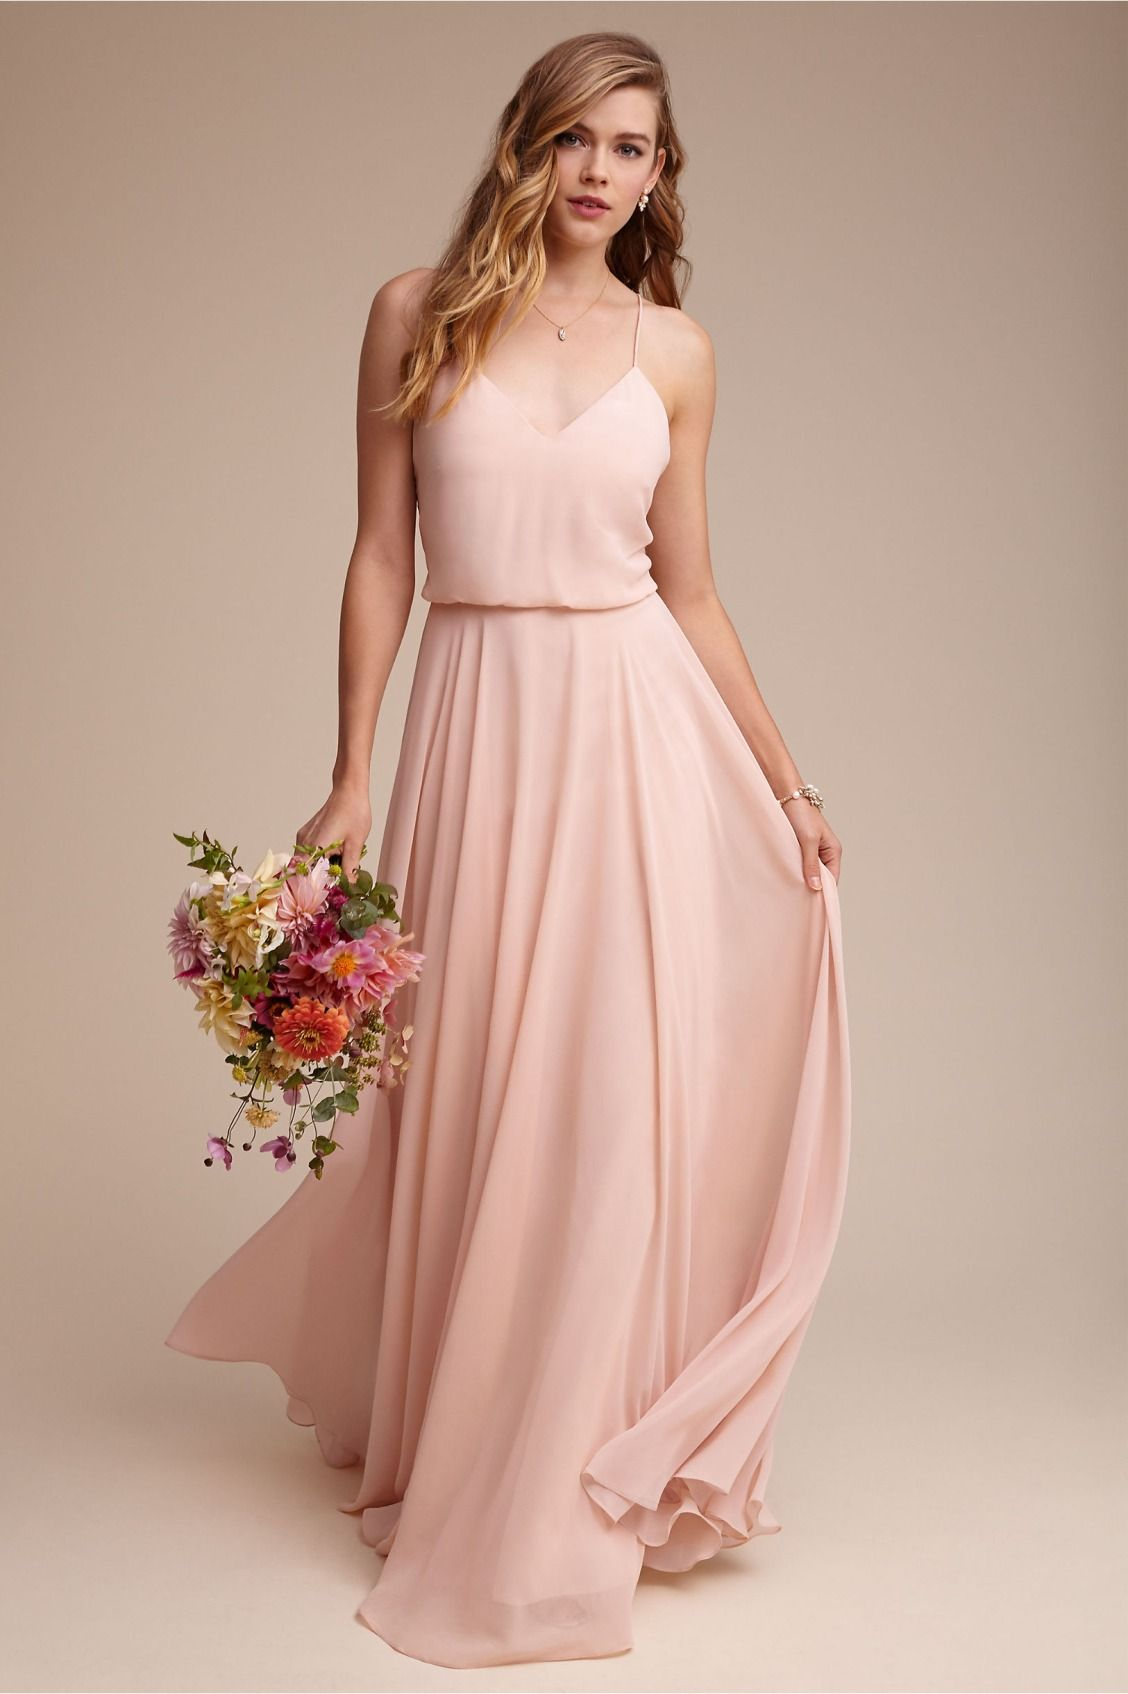 a chic maid | Inesse Dress in Blush from BHLDN | Bridesmaid Dresses ...